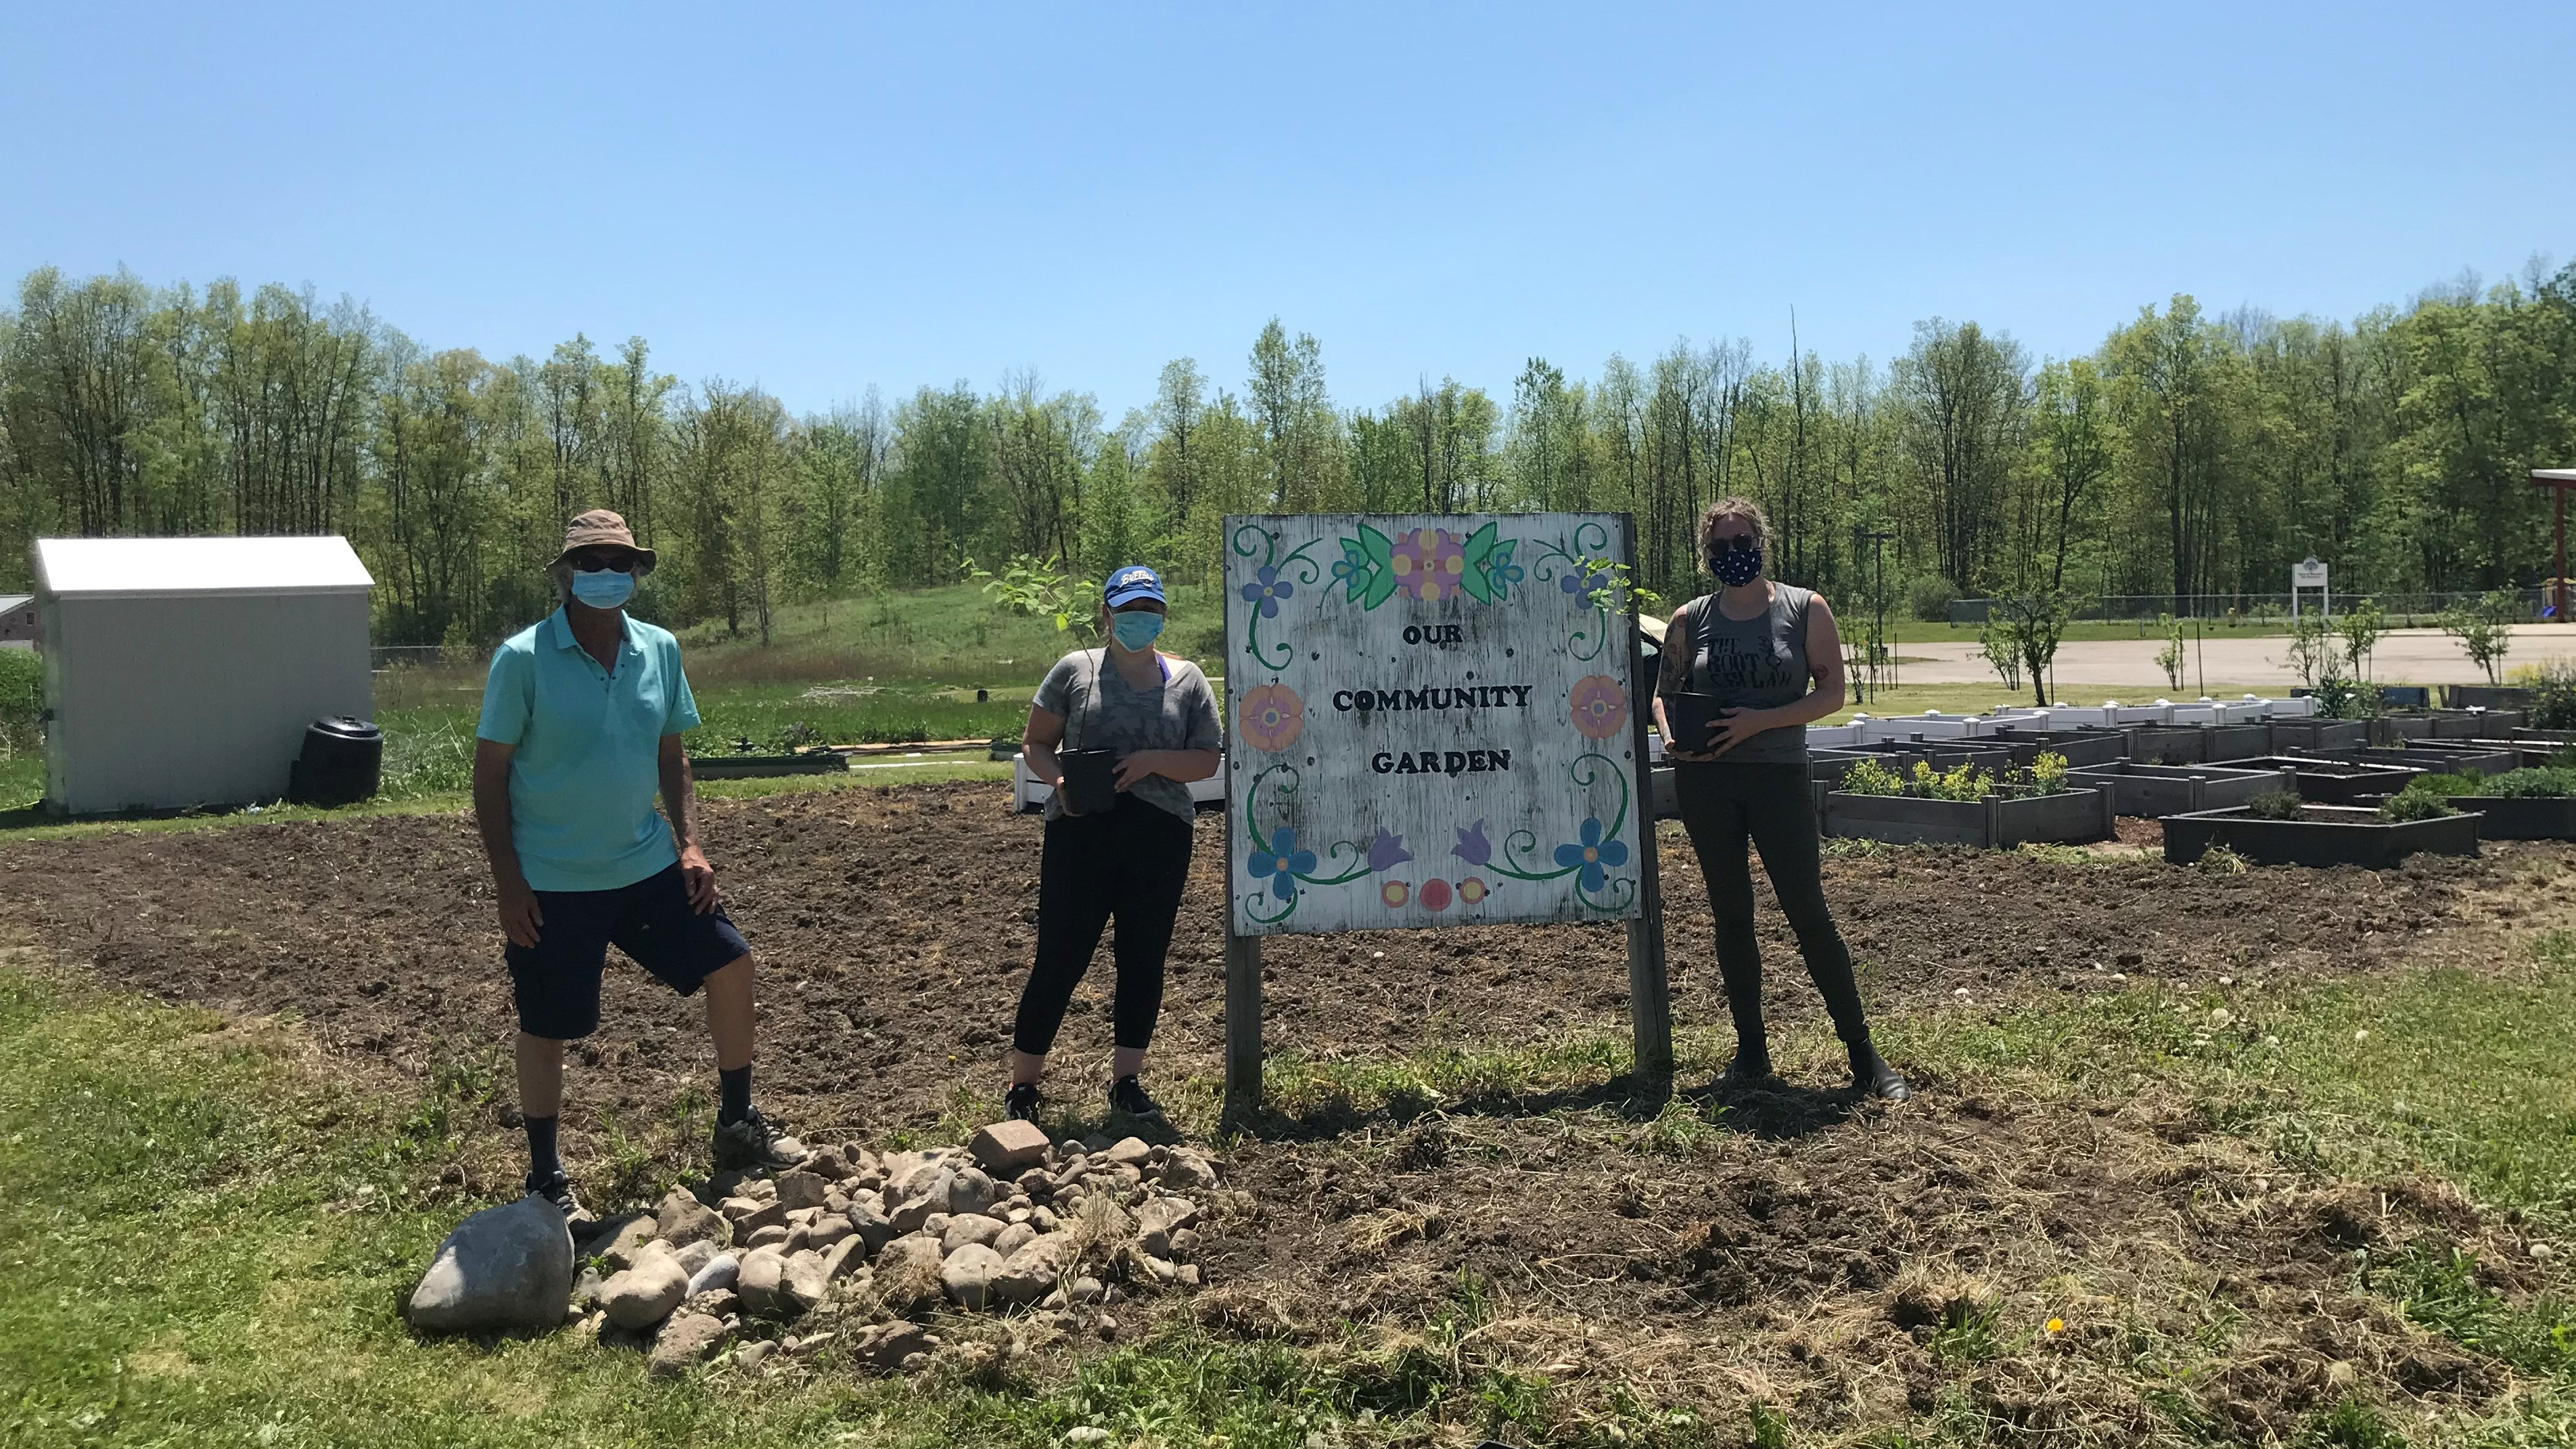 Three people standing at the community garden at Chippewas of the Thames First Nation